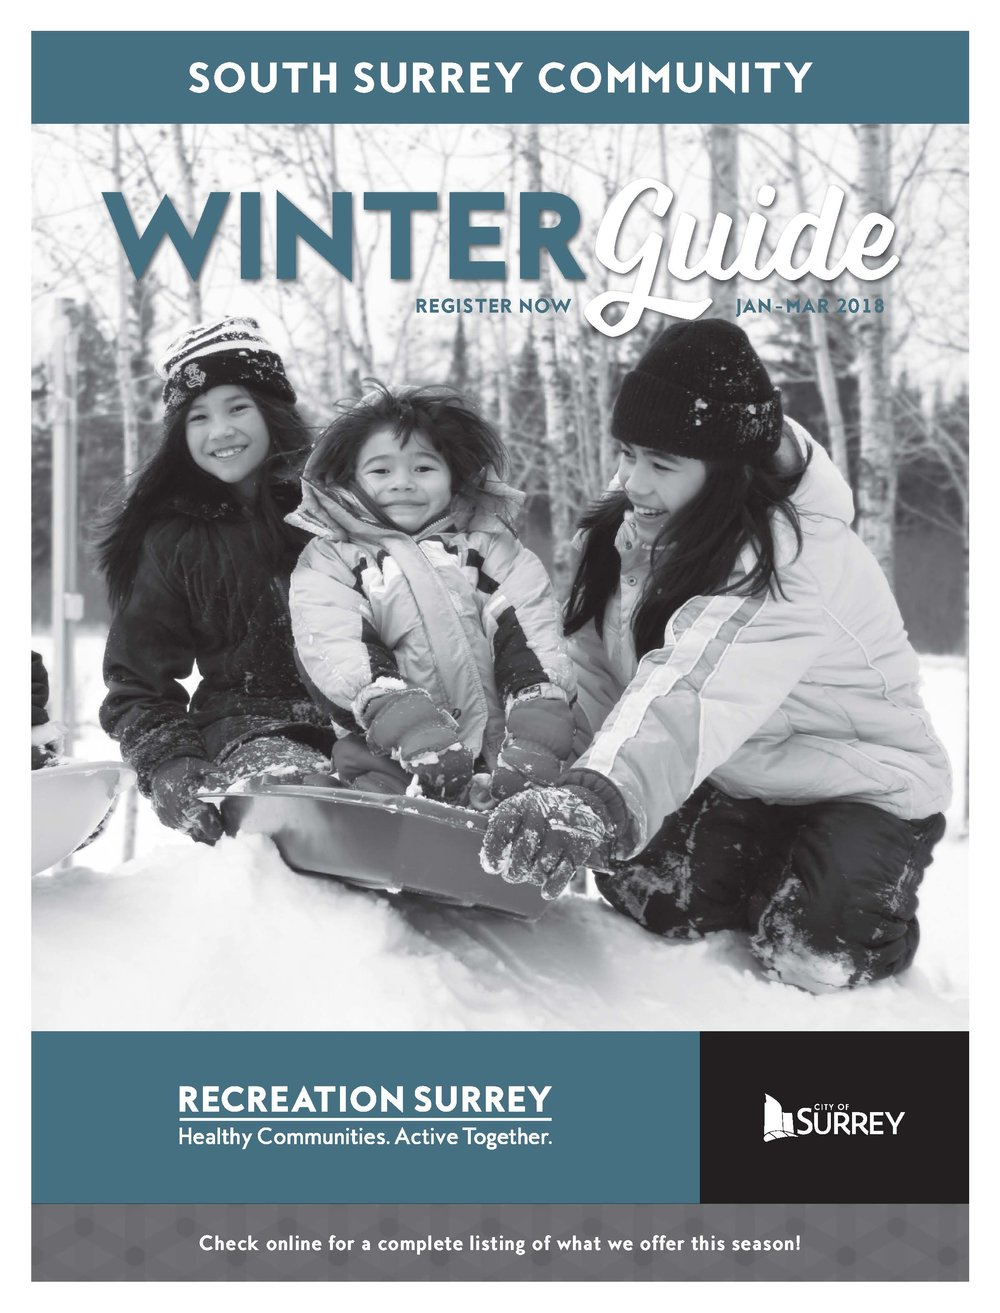 South Surrey 2018 Winter Community Rec Guide FINAL PRINT_Page_01.jpg